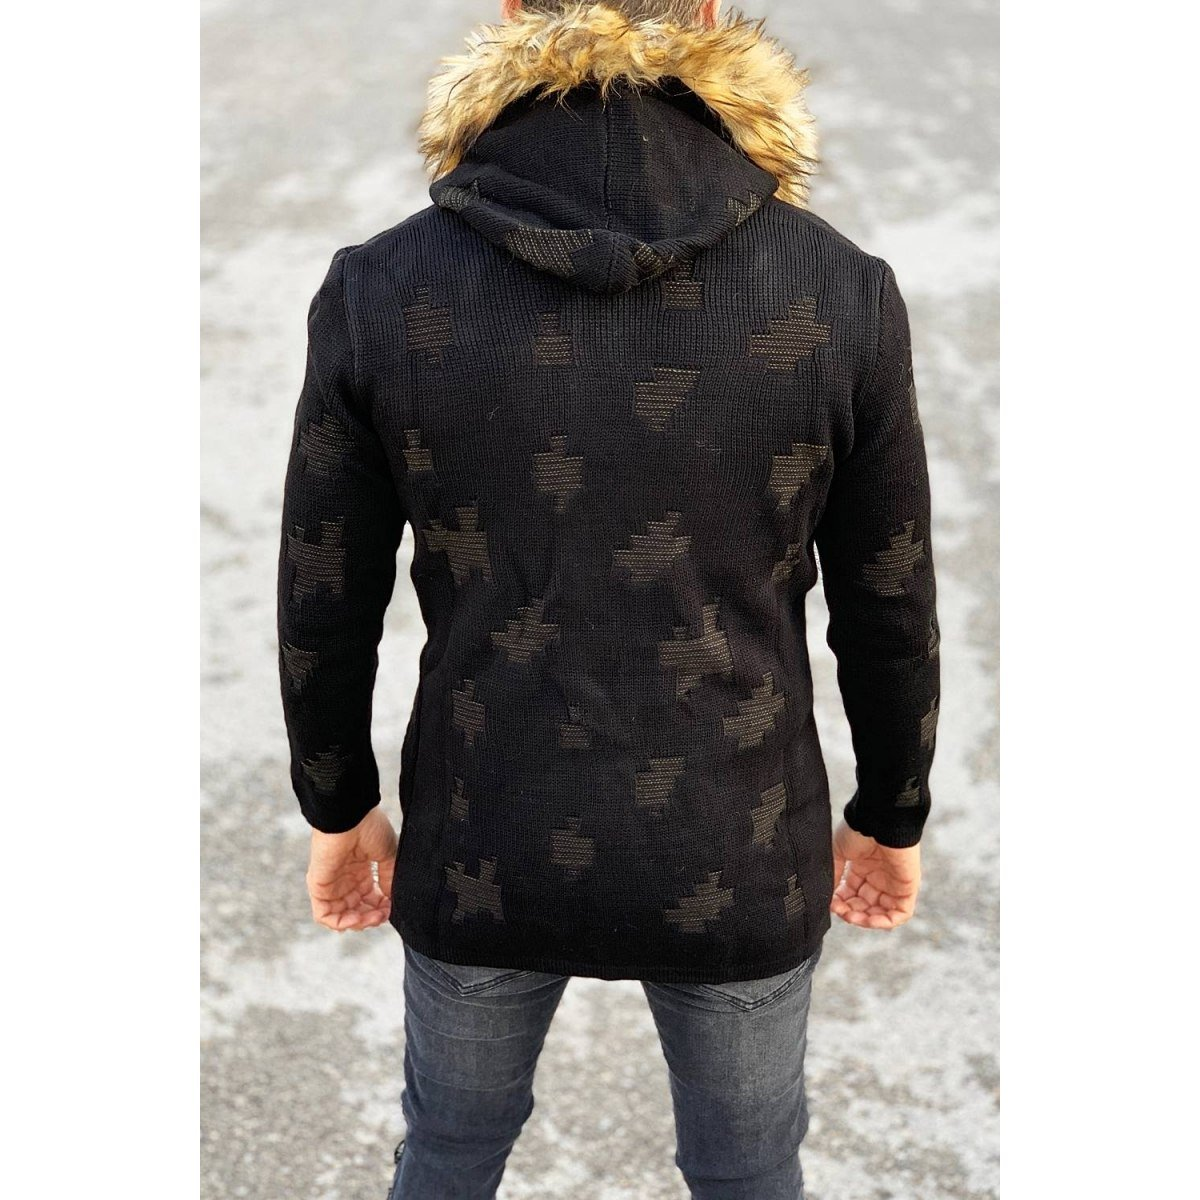 Patterned Fur-Hood Cardigan Jacket in Black Mv Premium Brand - 1